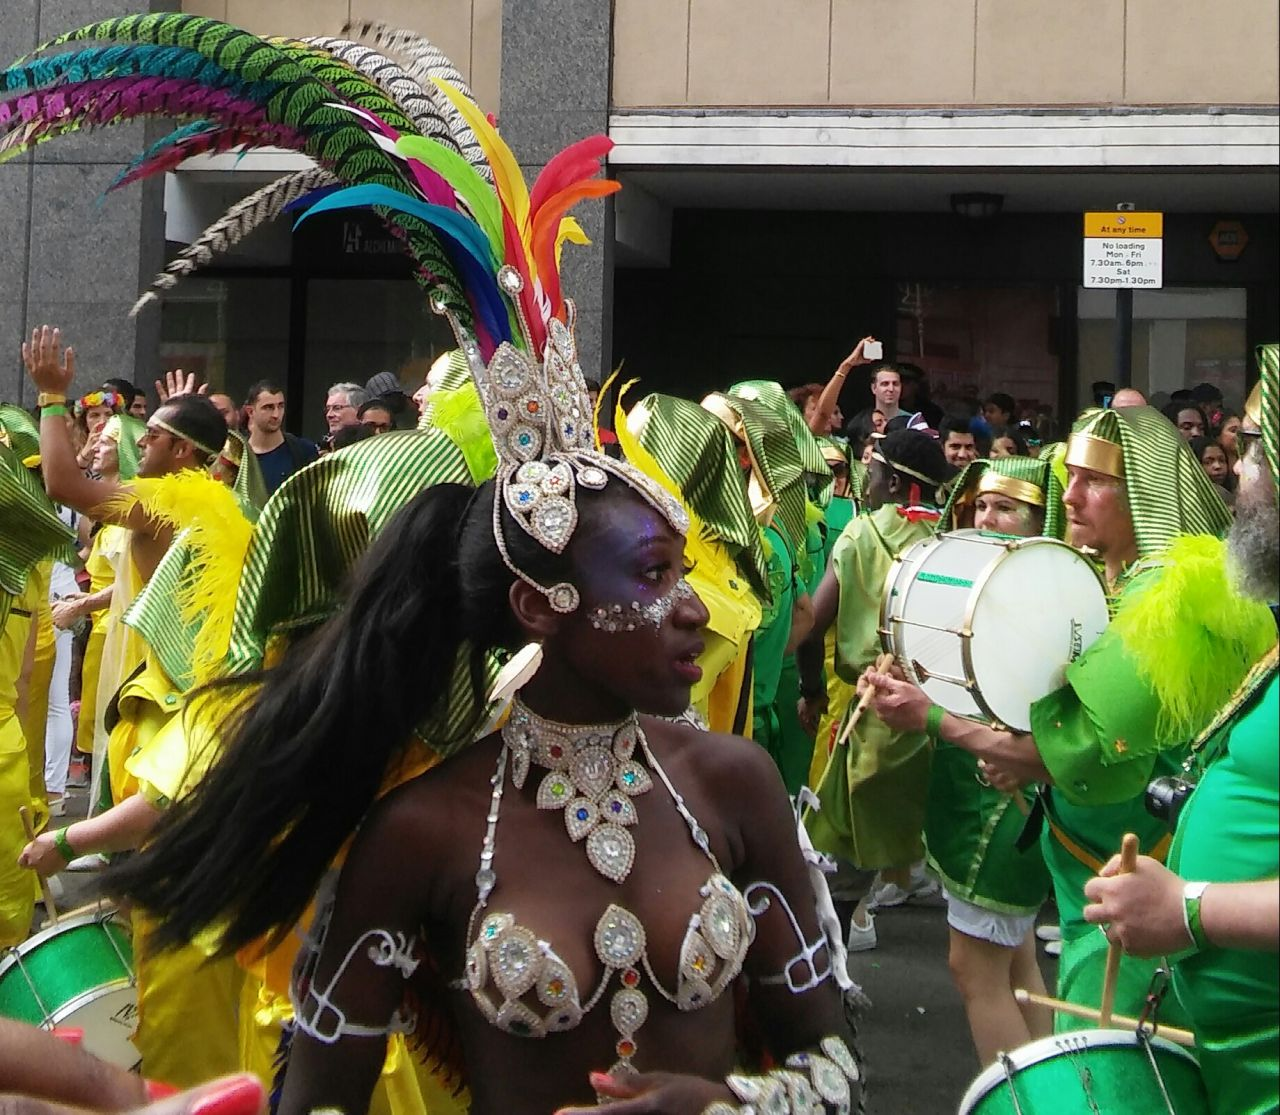 Notting Hill Karneval in London (Foto: Birgit Hartmeyer)